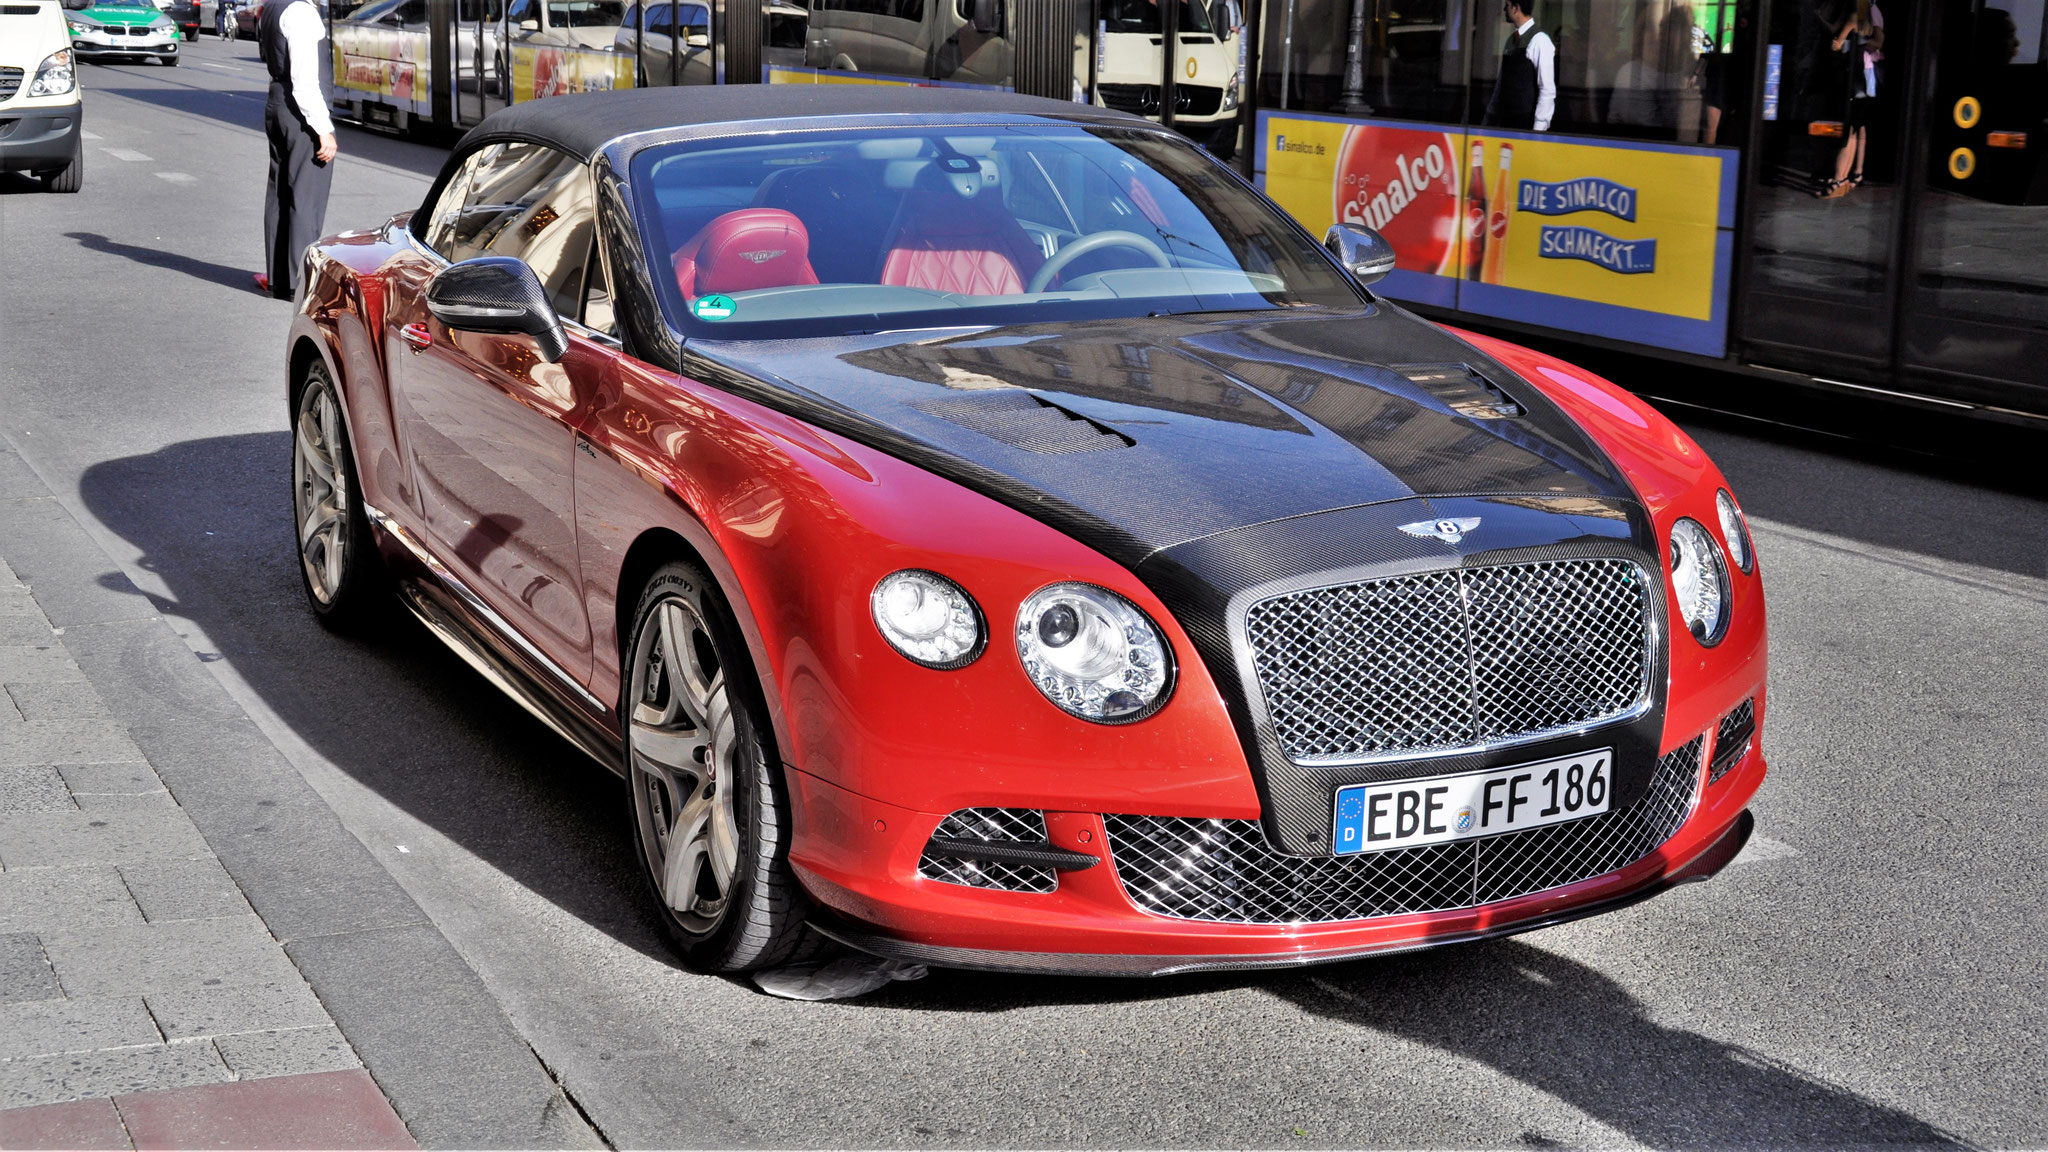 Bentley Continental GTC Speed - EBE-FF-186